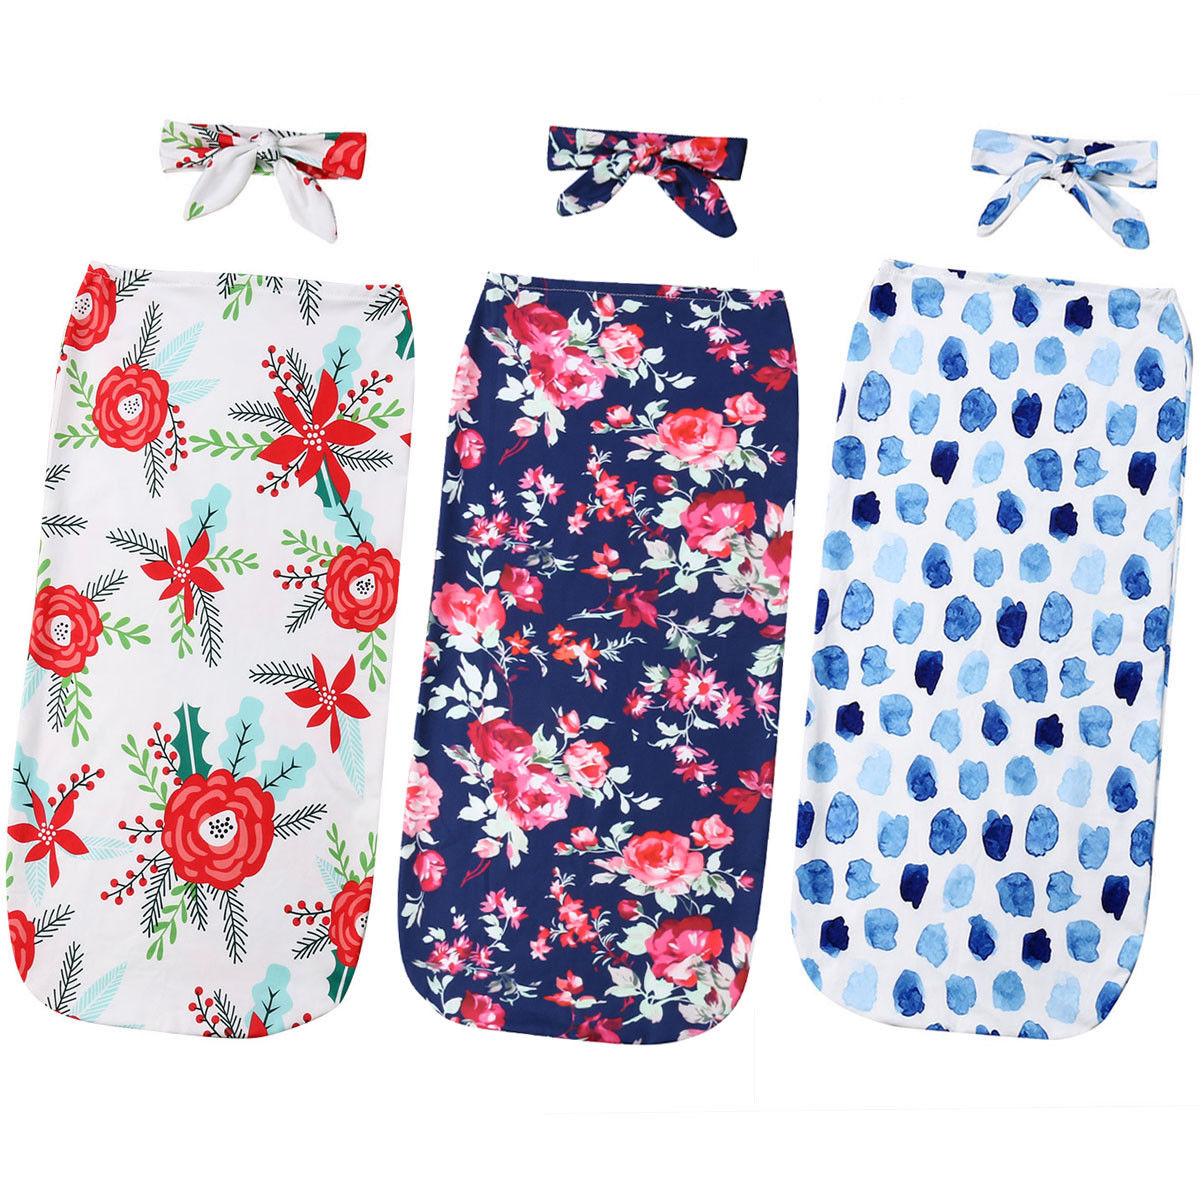 2019 Spring New Newborn Soft Muslin Floral Baby Swaddle Nursery Sleeping Bag Blanket Headband